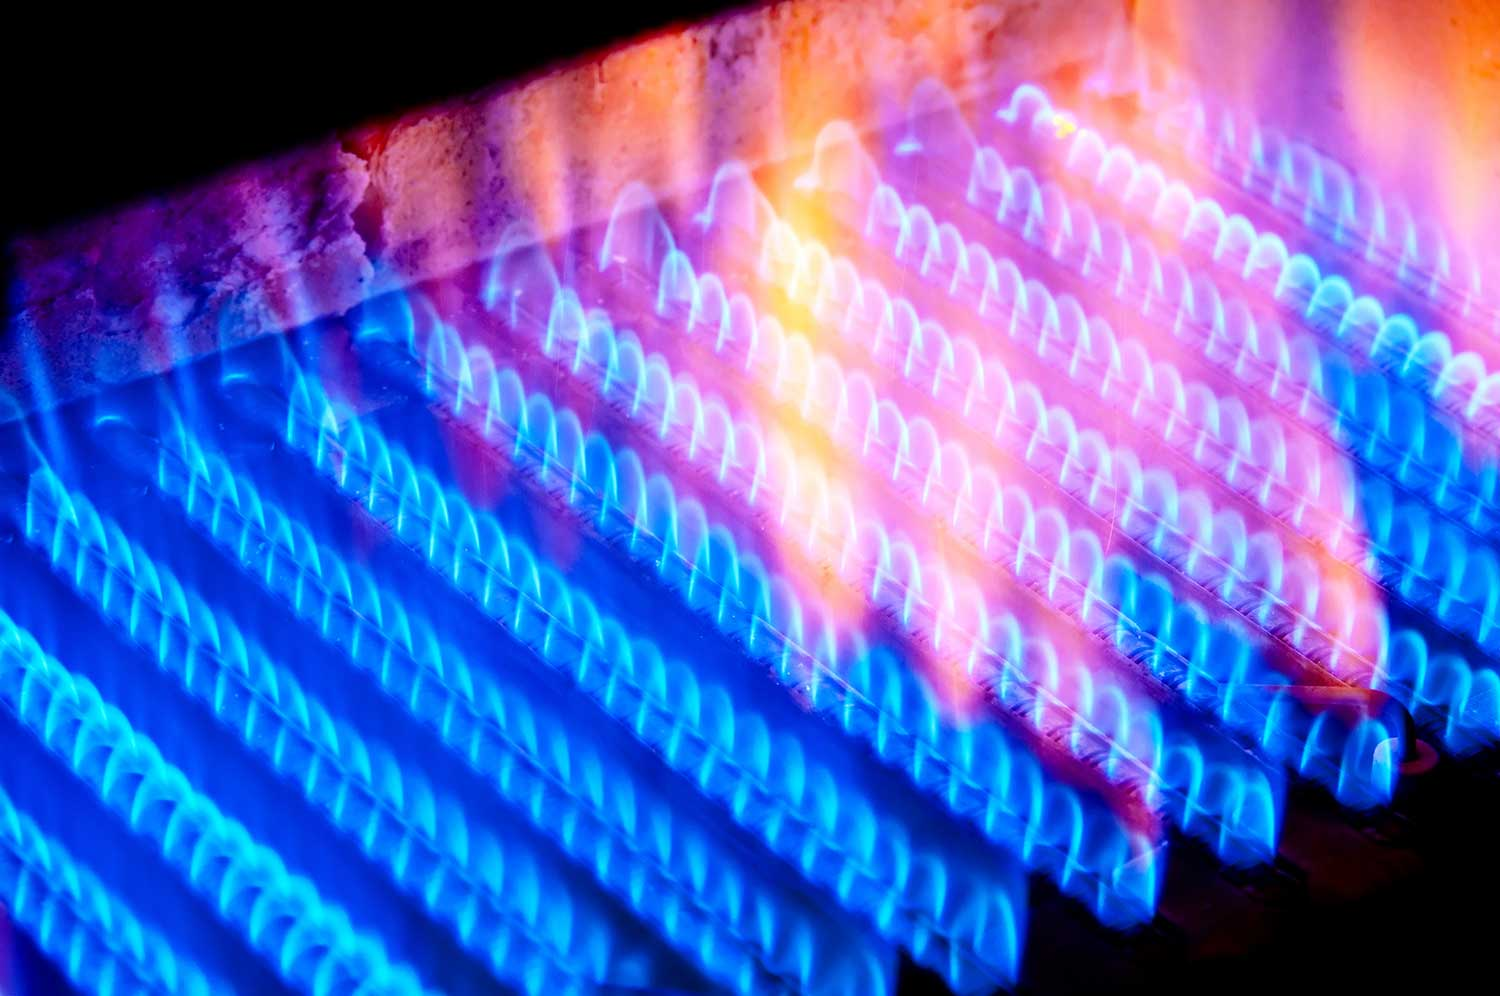 The fire burns from a gas burner inside the boiler